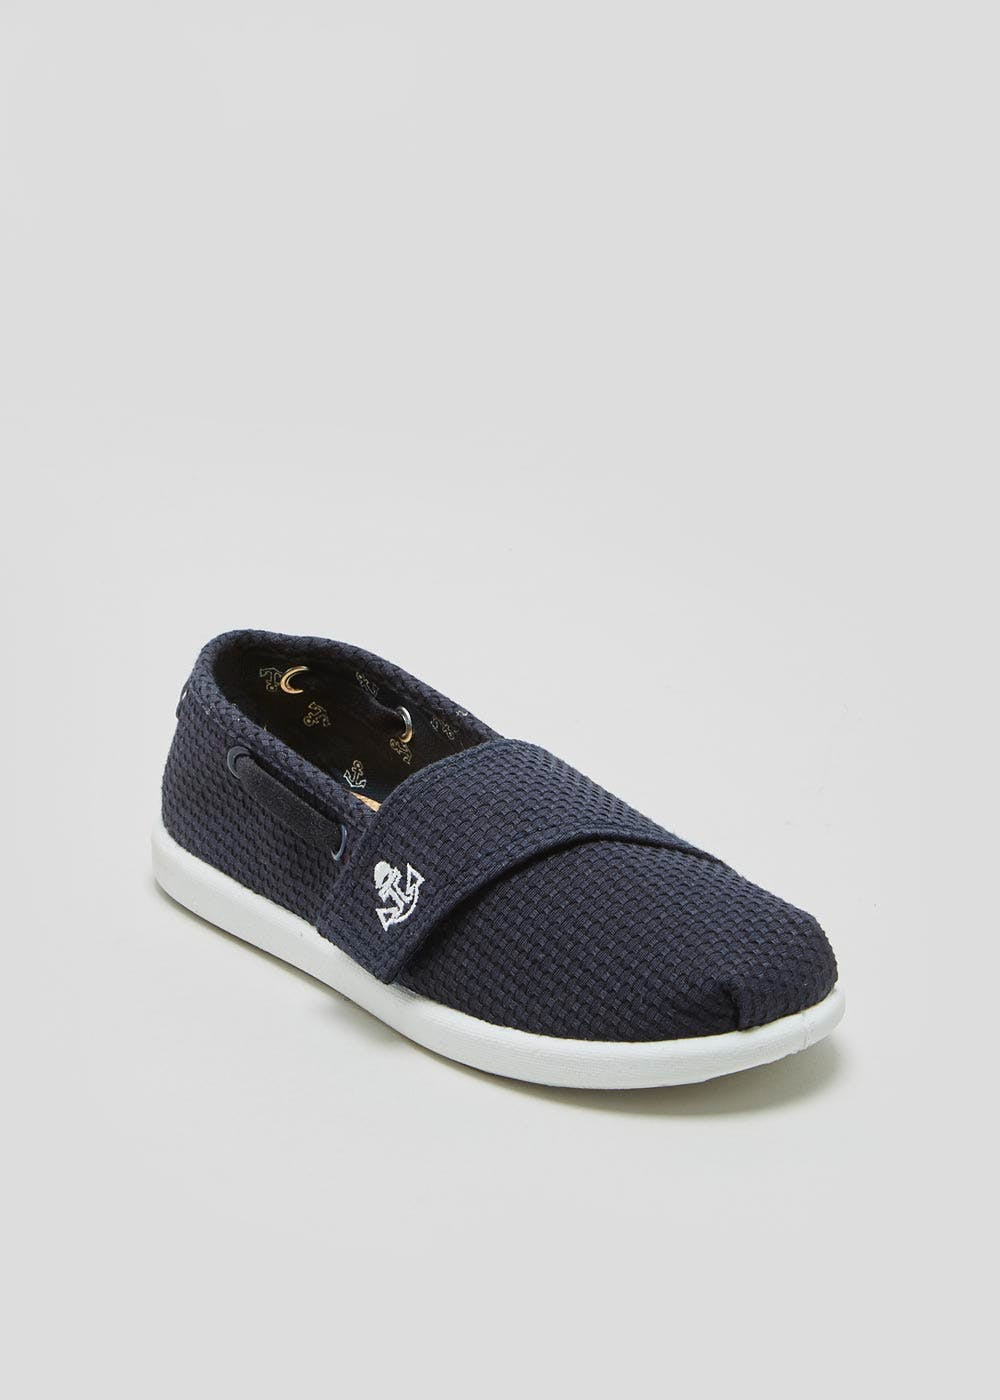 Boys Canvas Boat Shoes (Younger 4-12